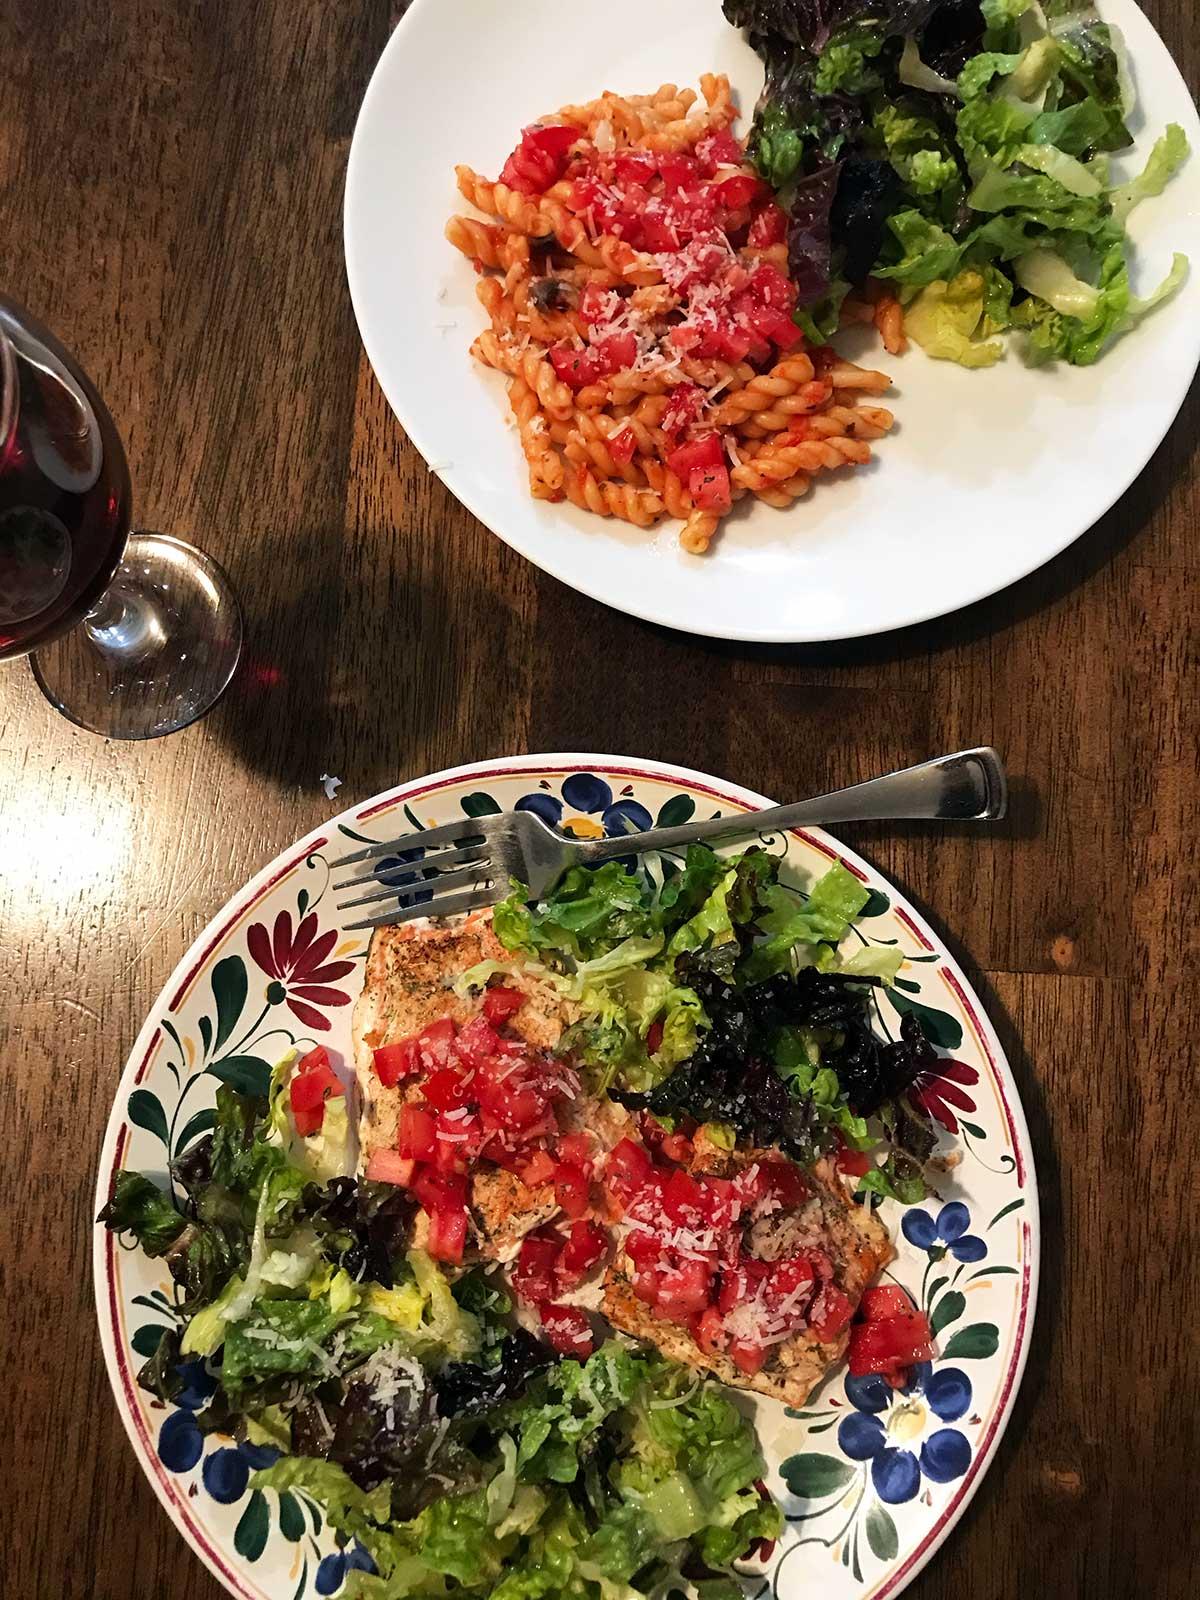 dinner plates of pasta with glass of wine